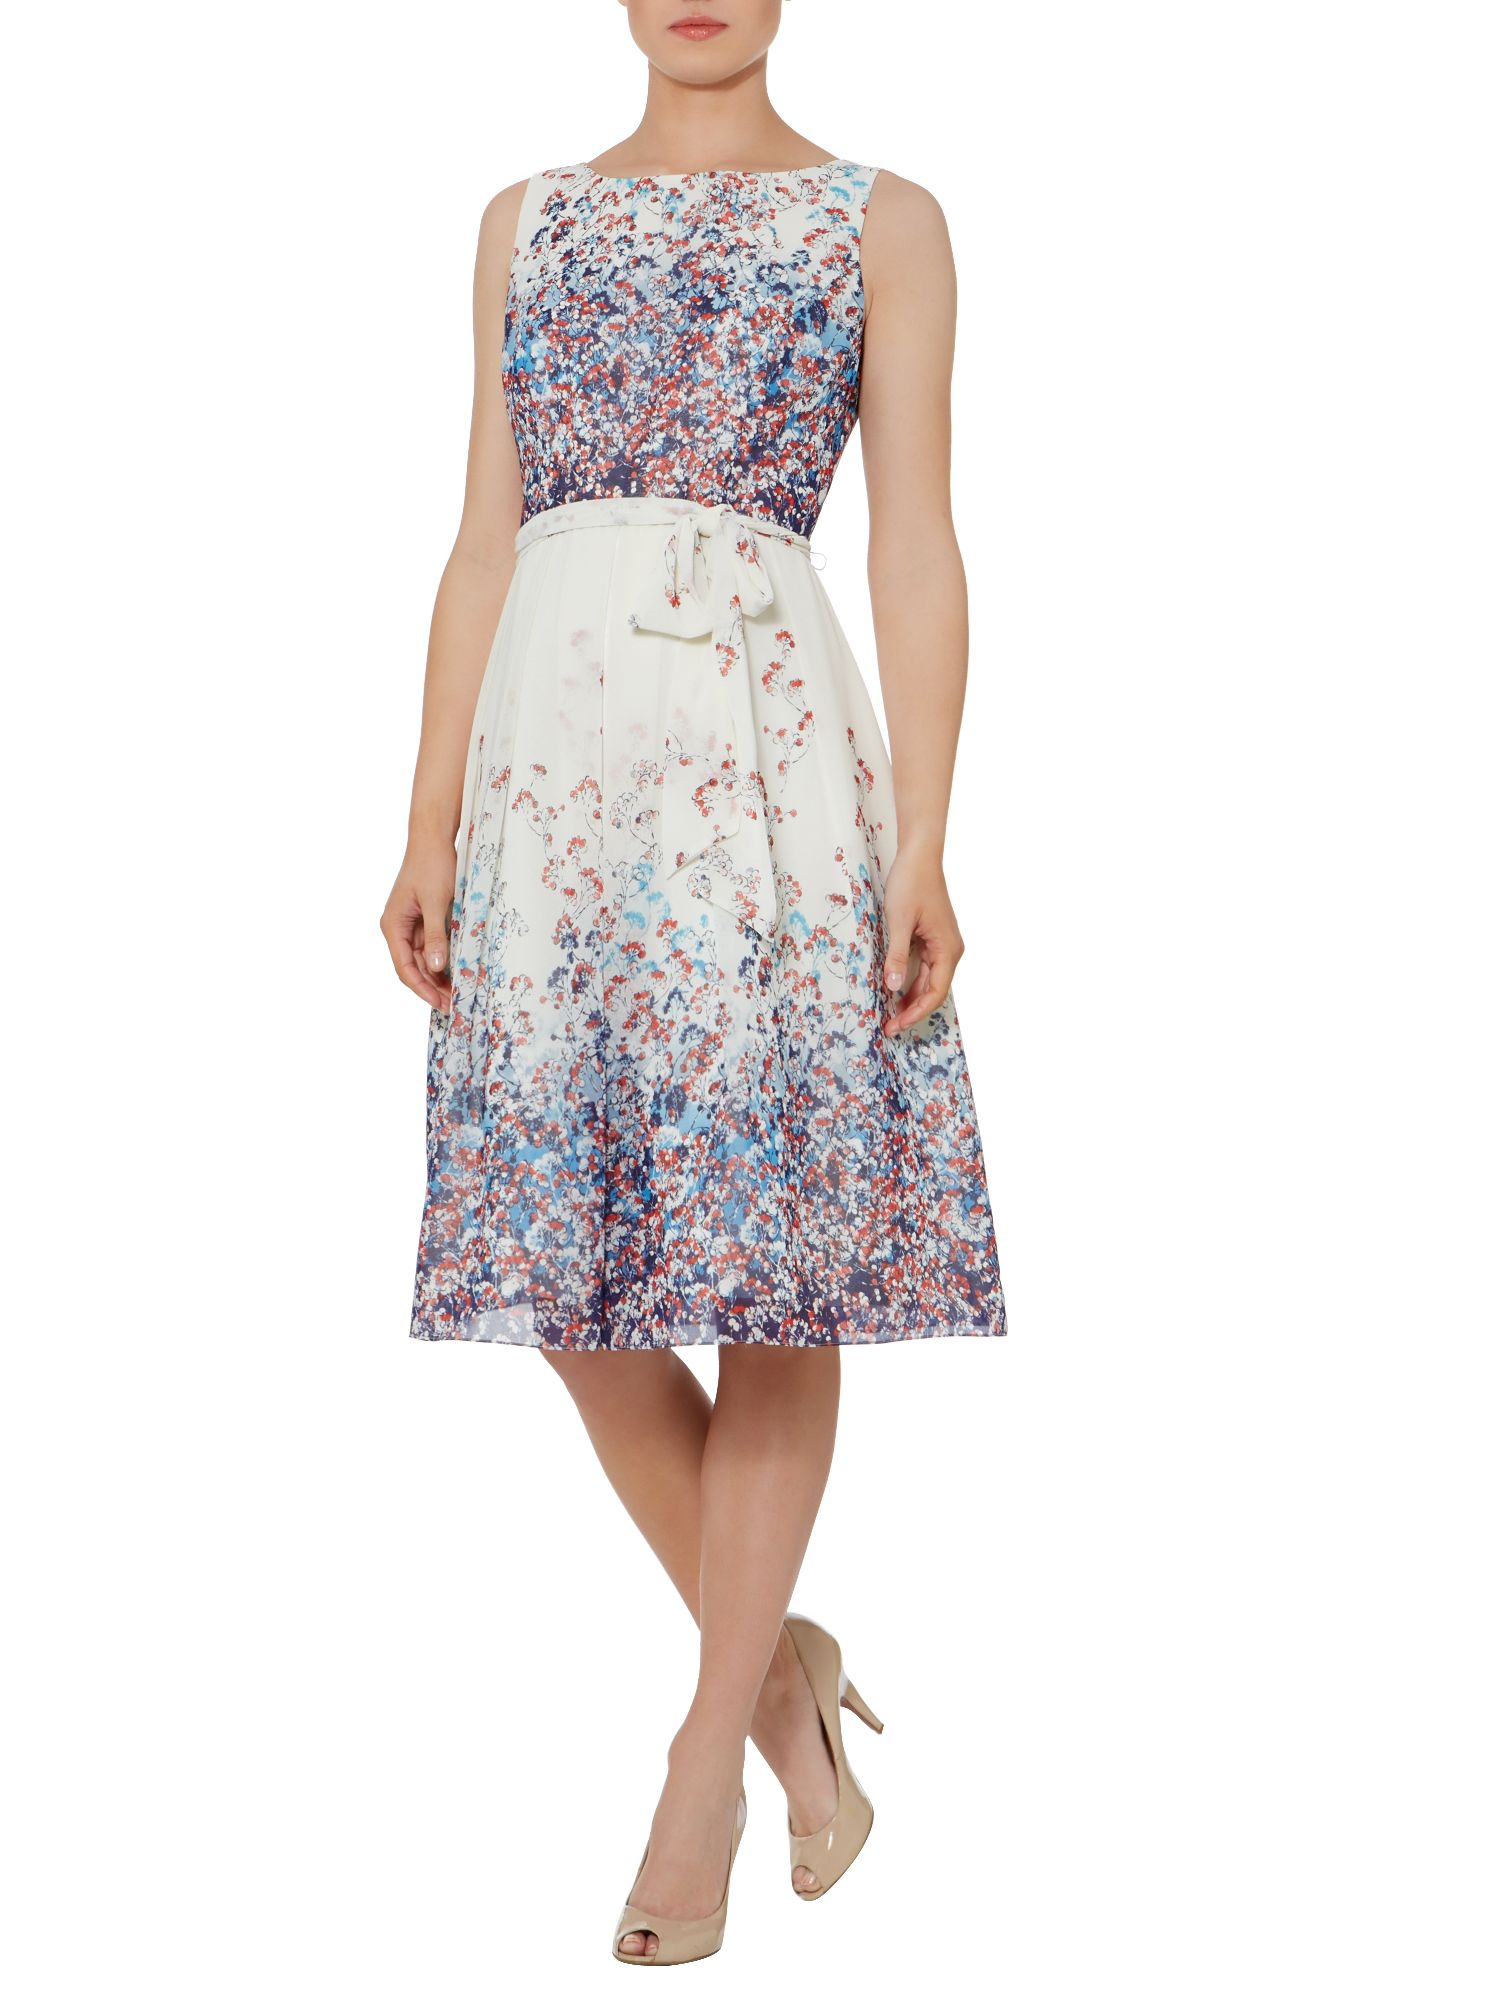 Heather floral print dress